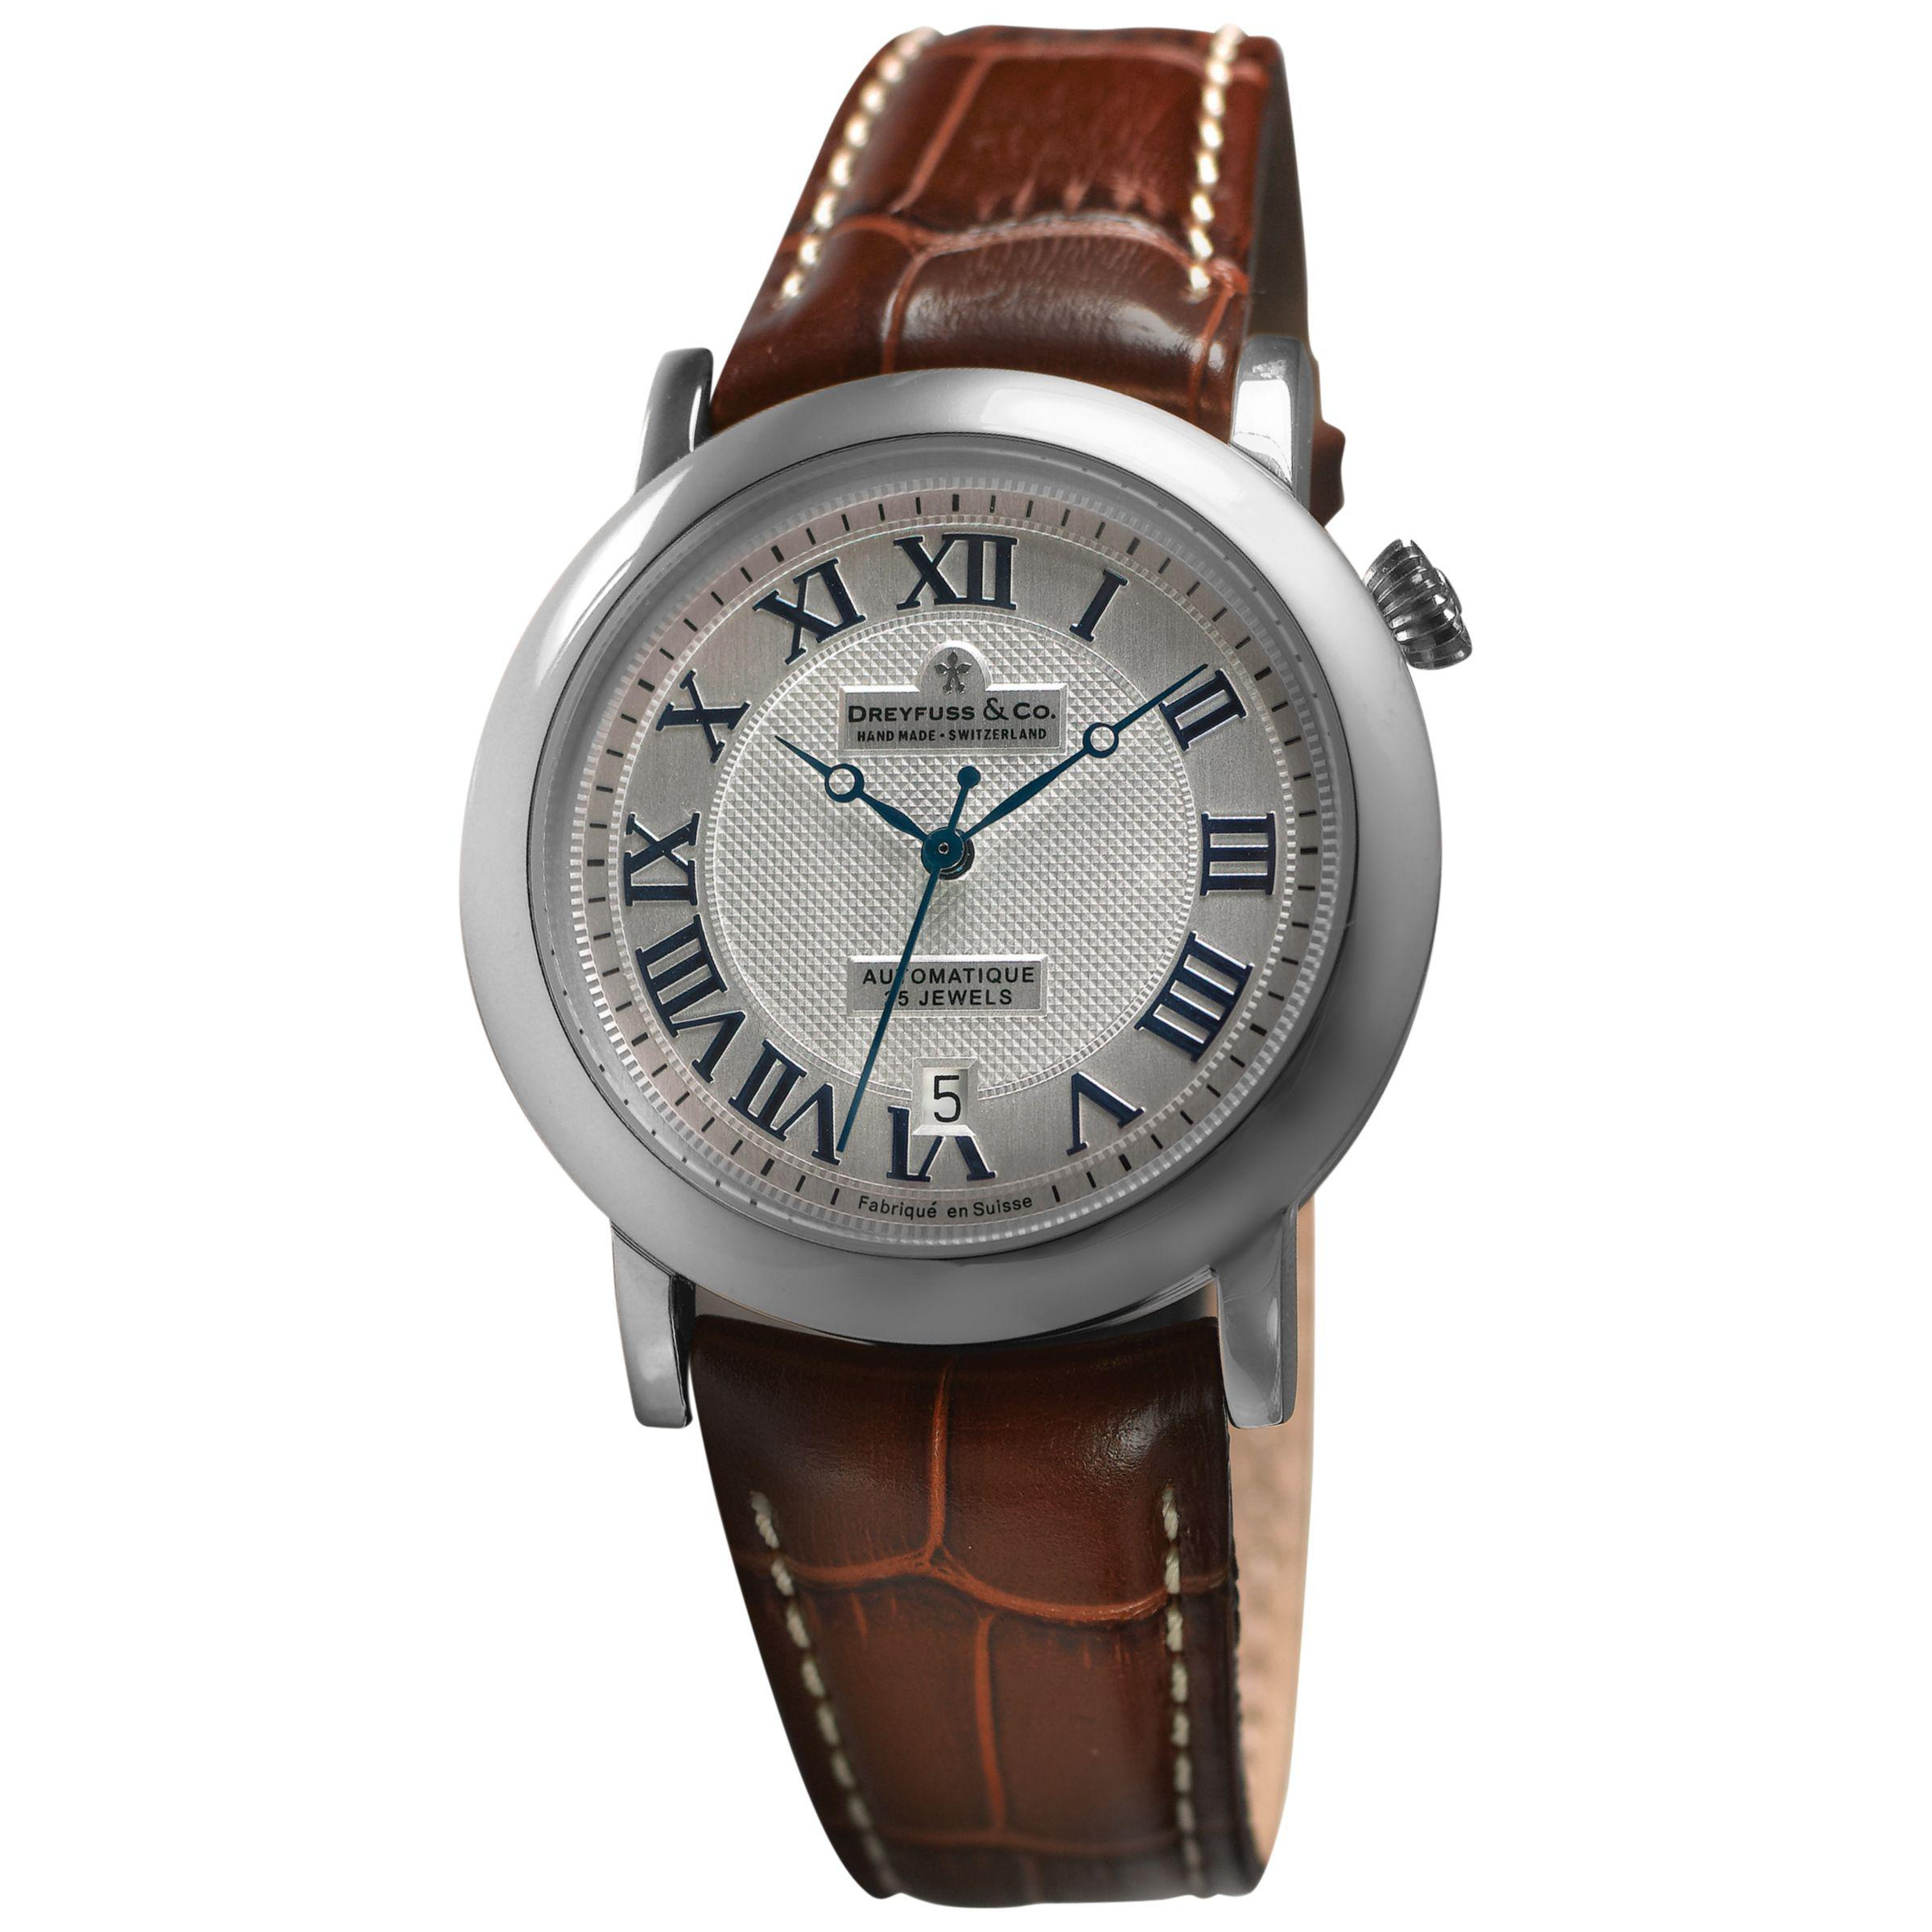 83e3c61a1c5d0 John Lewis Dreyfuss   Co Dgs00030 21 Men s 1925 Leather Strap Watch ...